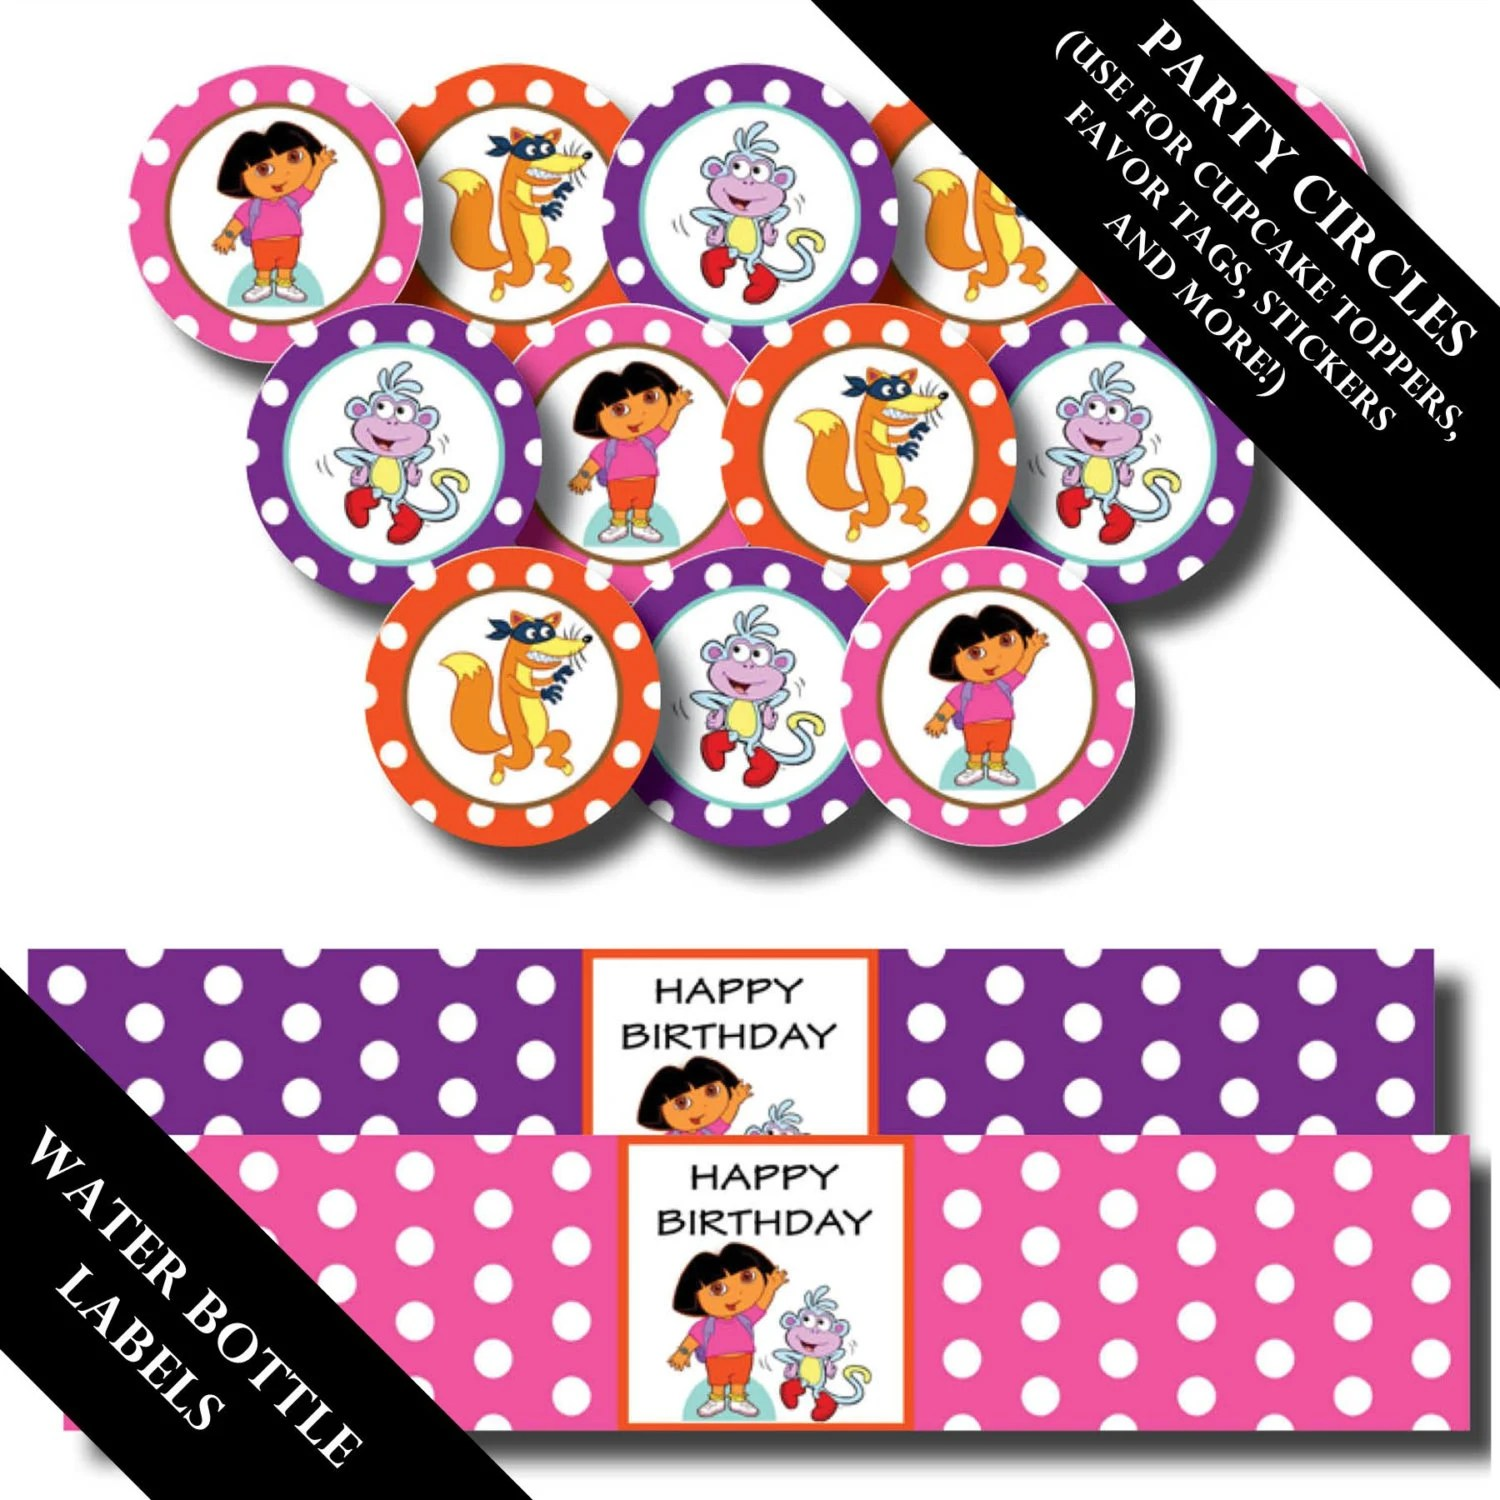 Dora The Explorer Printable Invitations And Party Decorations